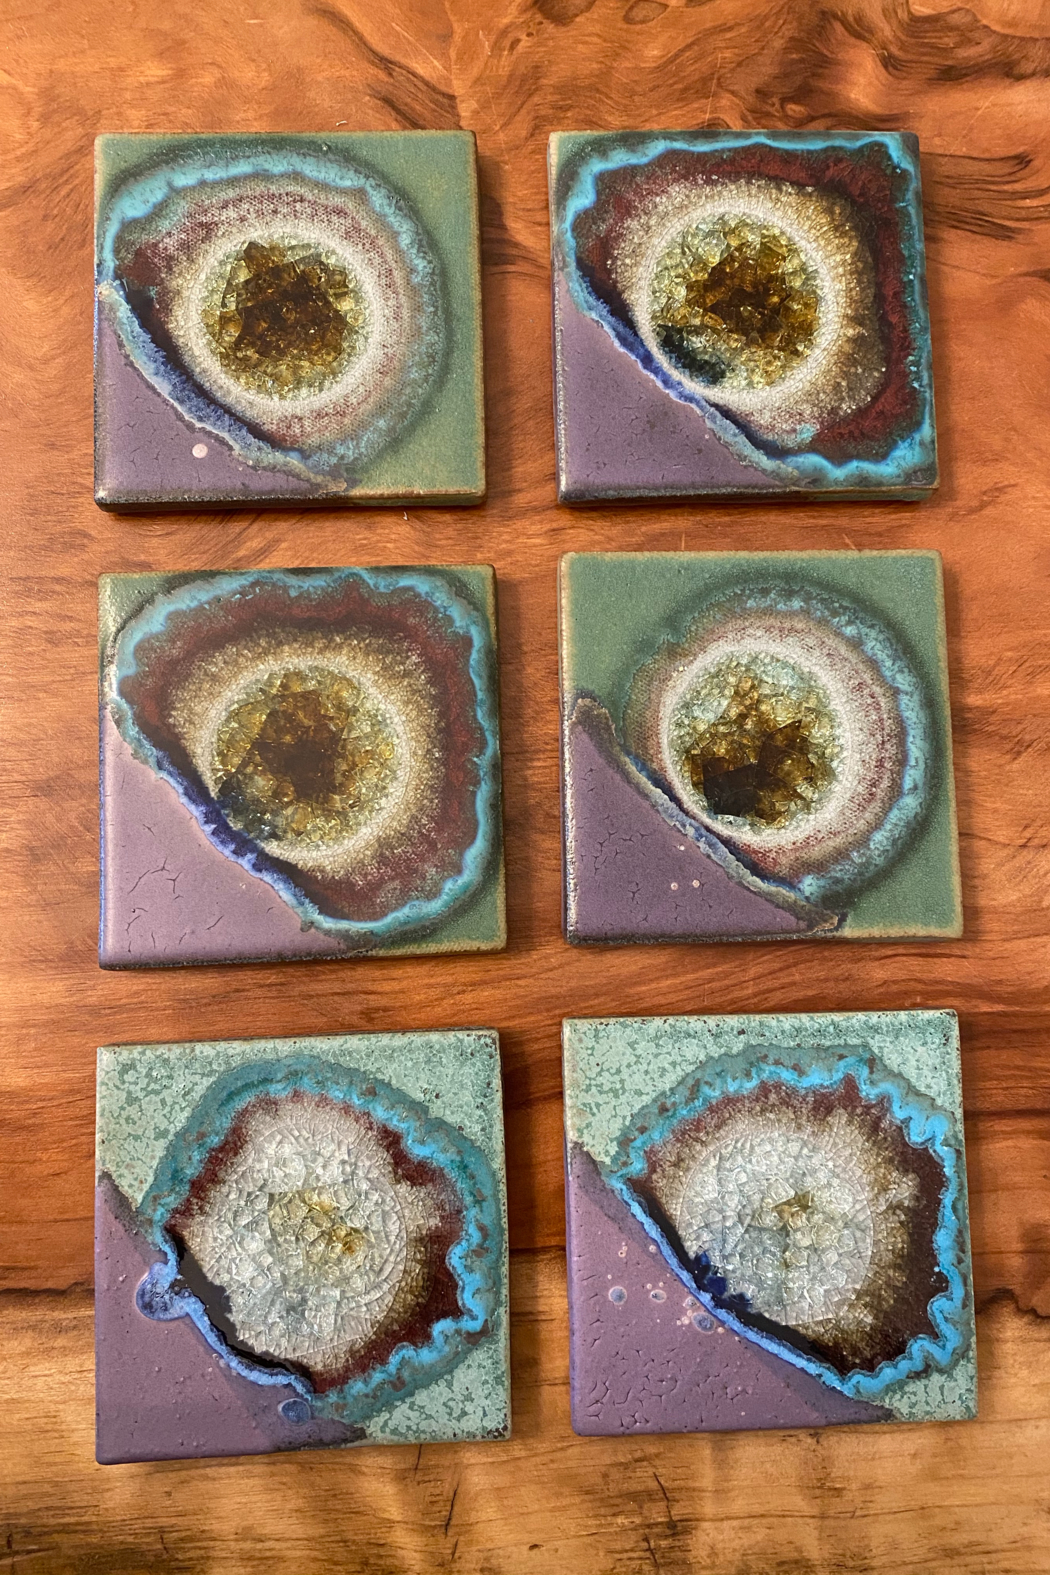 tesoro  Handmade Pottery with Fused Glass Purple and Teal Coasters - Main Image